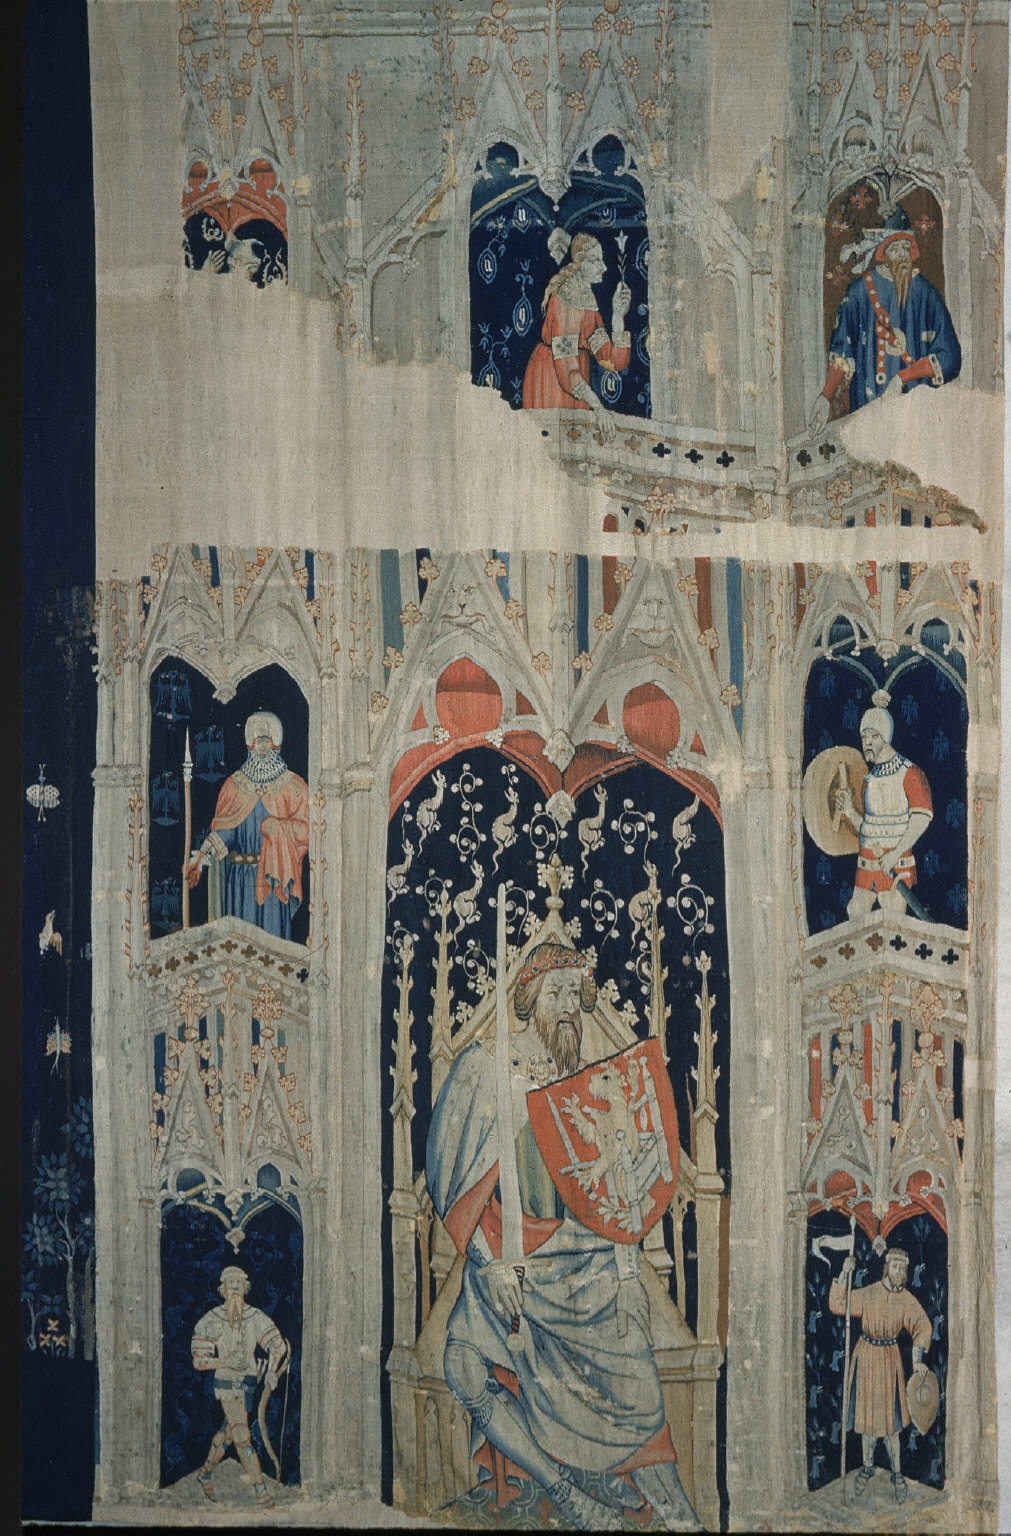 Tapestry fragment from the series 'Five Worthies and Attendant Figures'